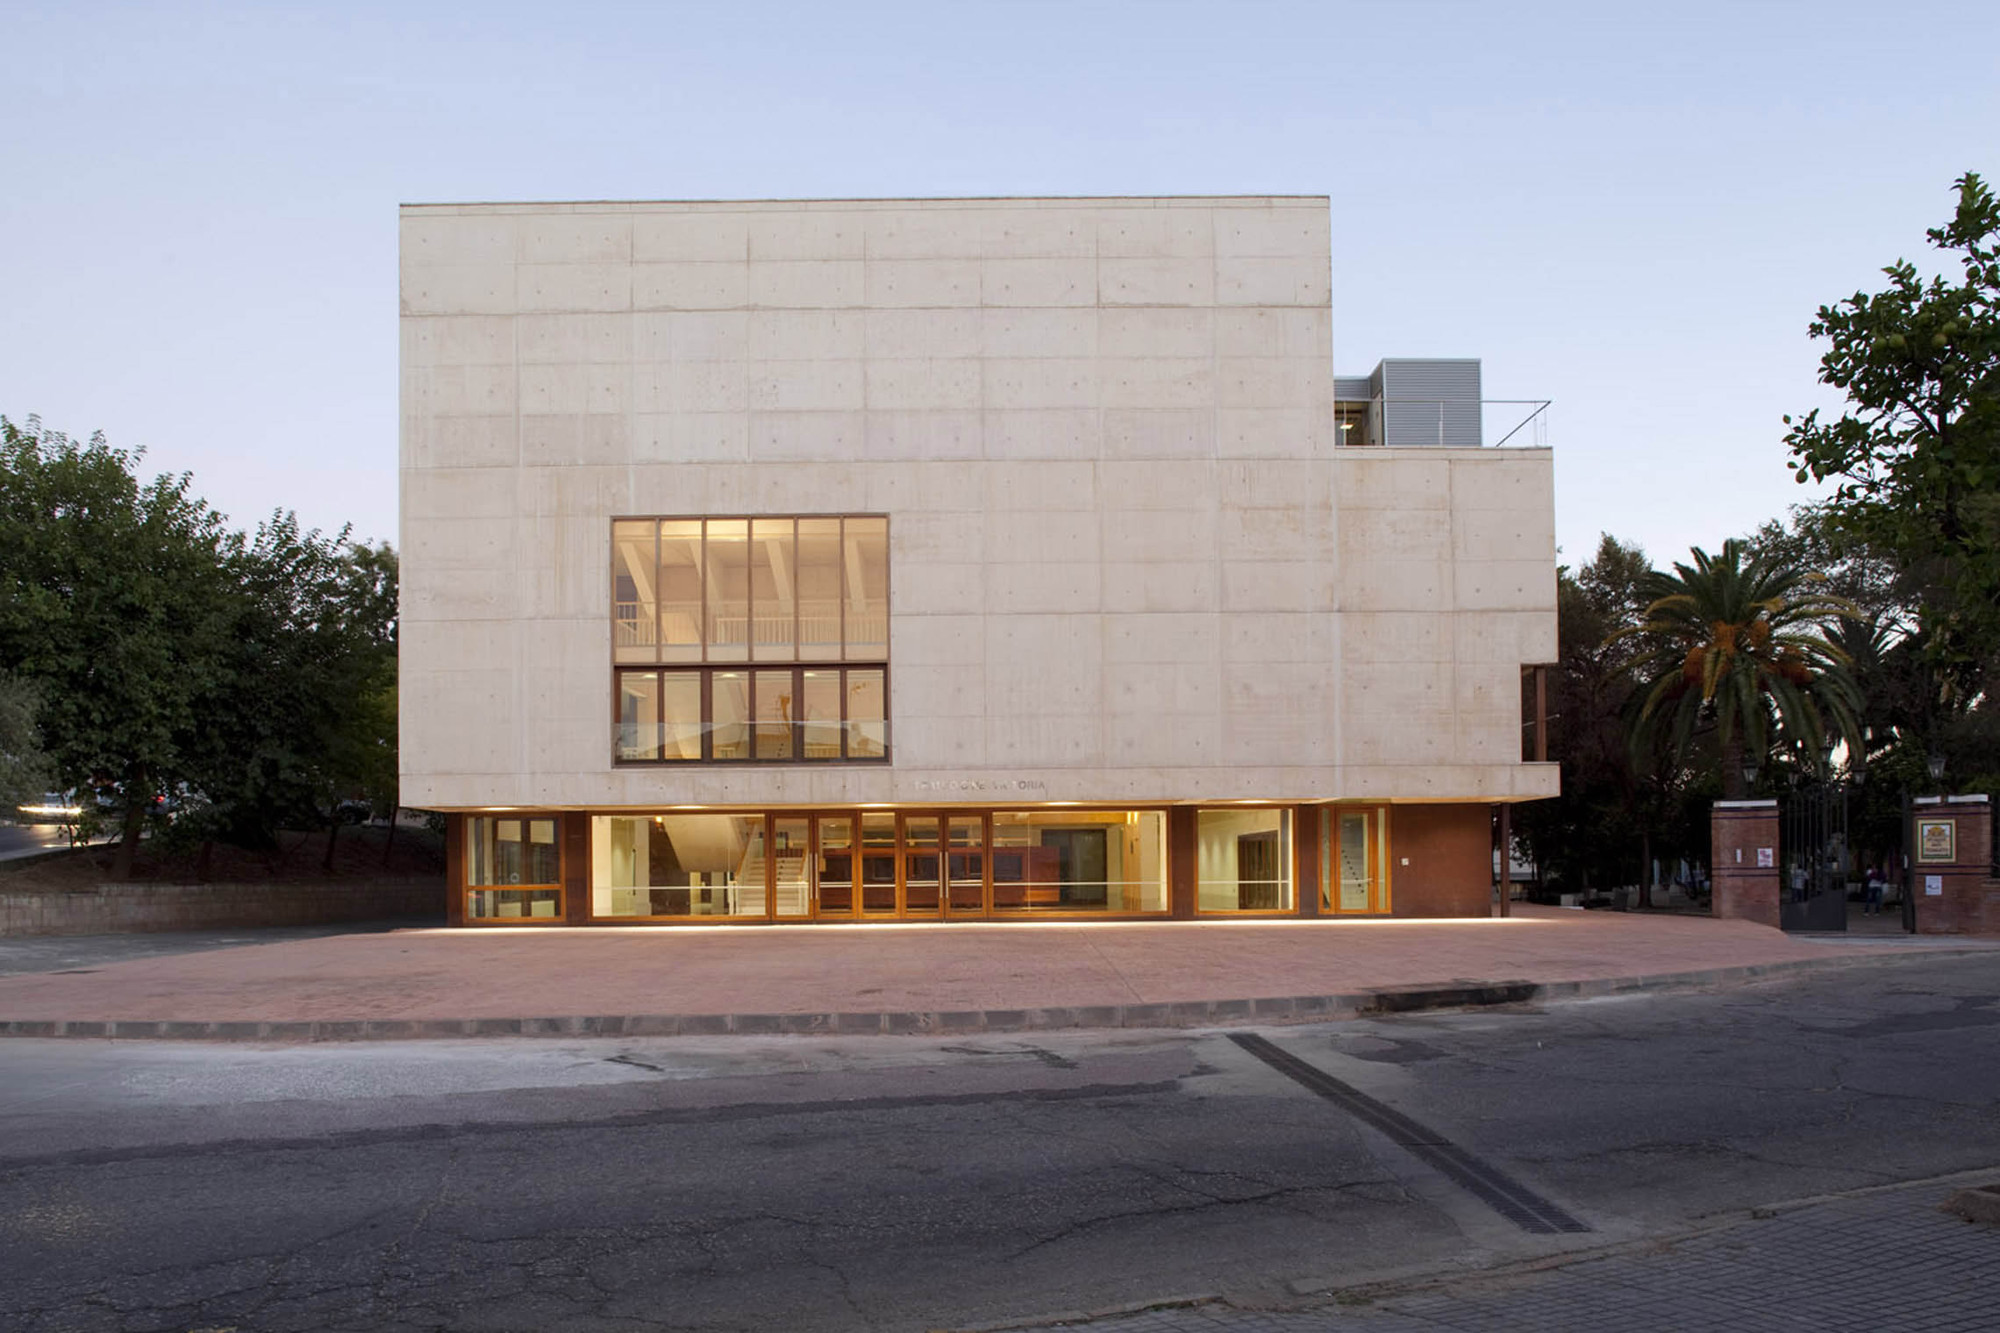 Teatro archdaily brasil for Archdaily com